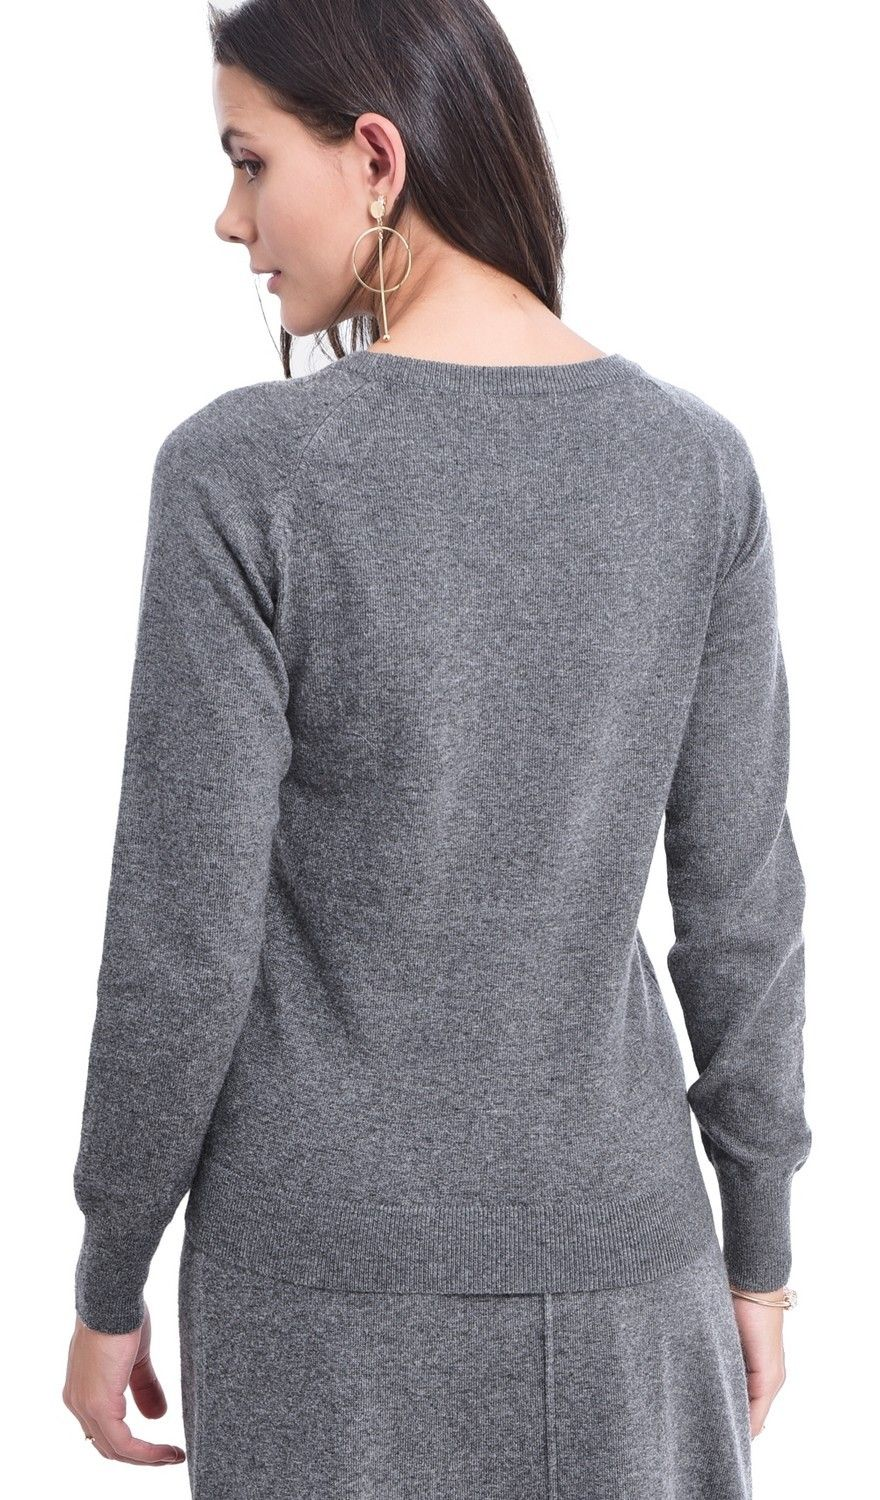 Assuili Round Neck Ribbed Sweater in Grey